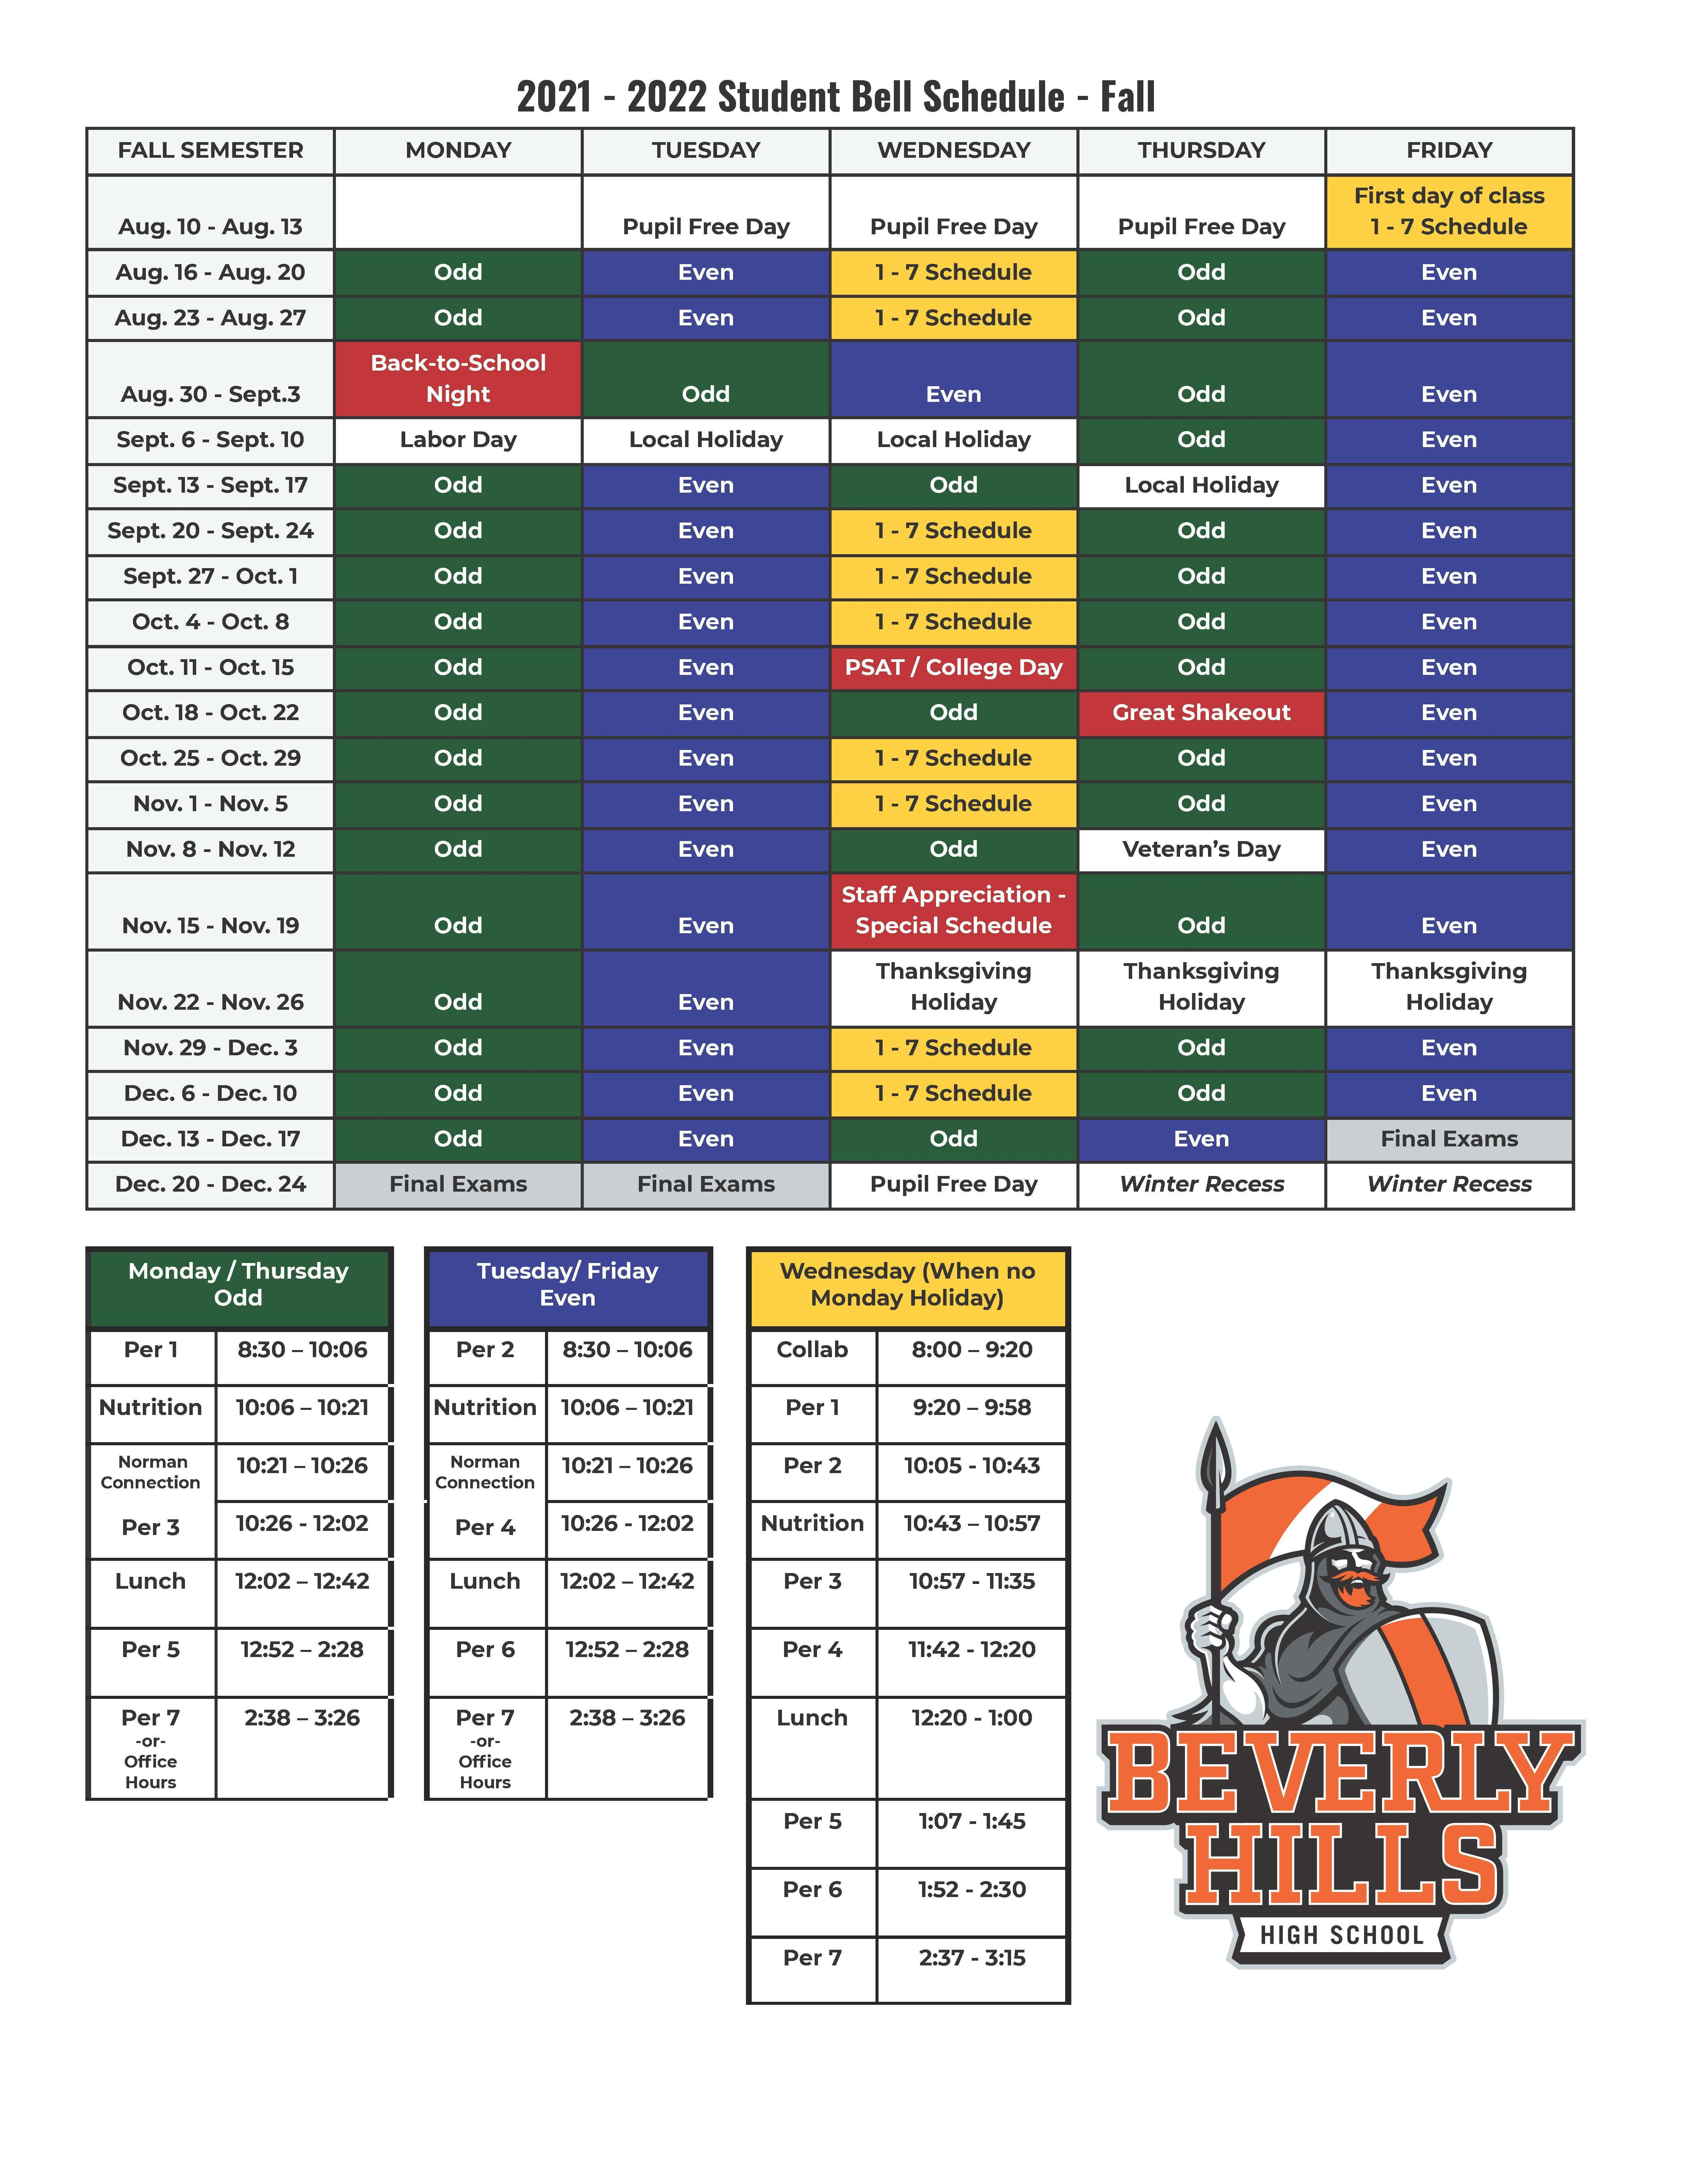 Student Bell Schedules Fall 2021-22